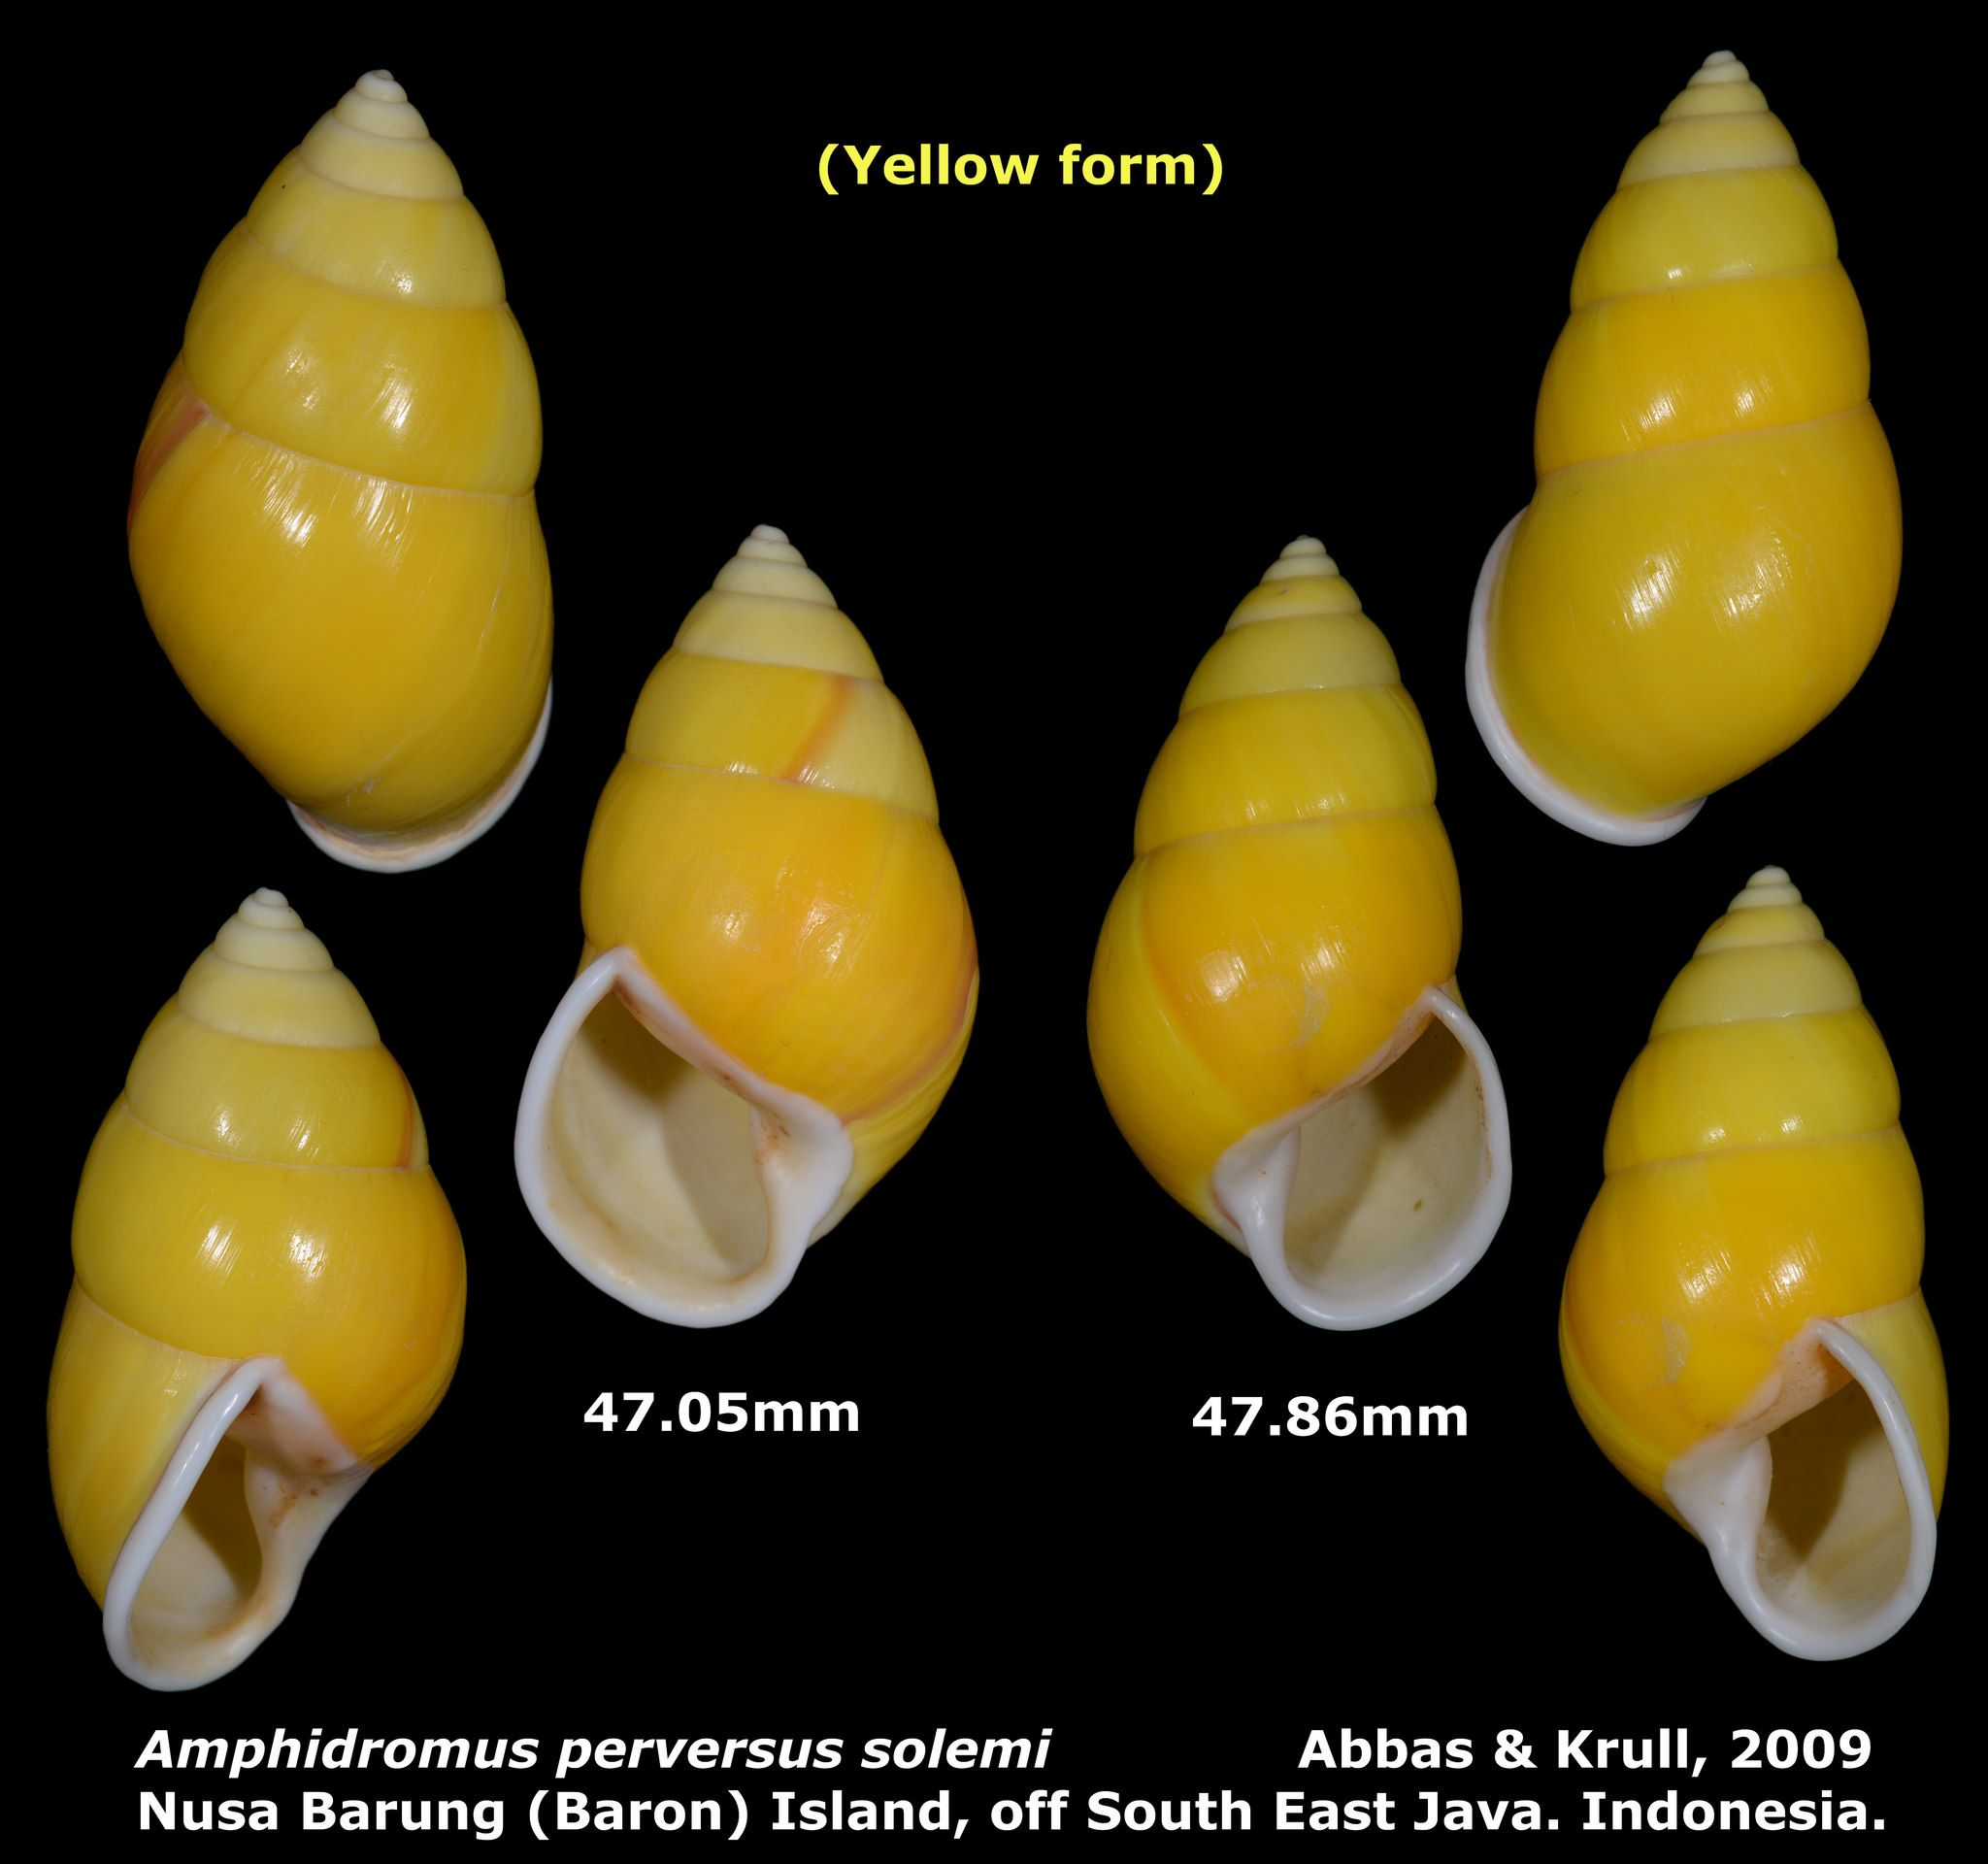 https://flic.kr/p/uJUDdx | Amphidromus perversus solemi 47.05 & 47.86mm | Phylum: Mollusca 軟體動物門 Class: Gastropods 腹足綱 Family: Camaenidae 南亞蝸牛科 Scientific name: Amphidromus perversus solemi Chinese name: Author: Abbas & Krull, 2009 Size: 47.05 & 47.86mm Description: (Yellow form). On bushes and trees, Nusa Barung (Baron) Island, off South East Java. Indonesia. March, 2015.  More detail photo, please click the following link.